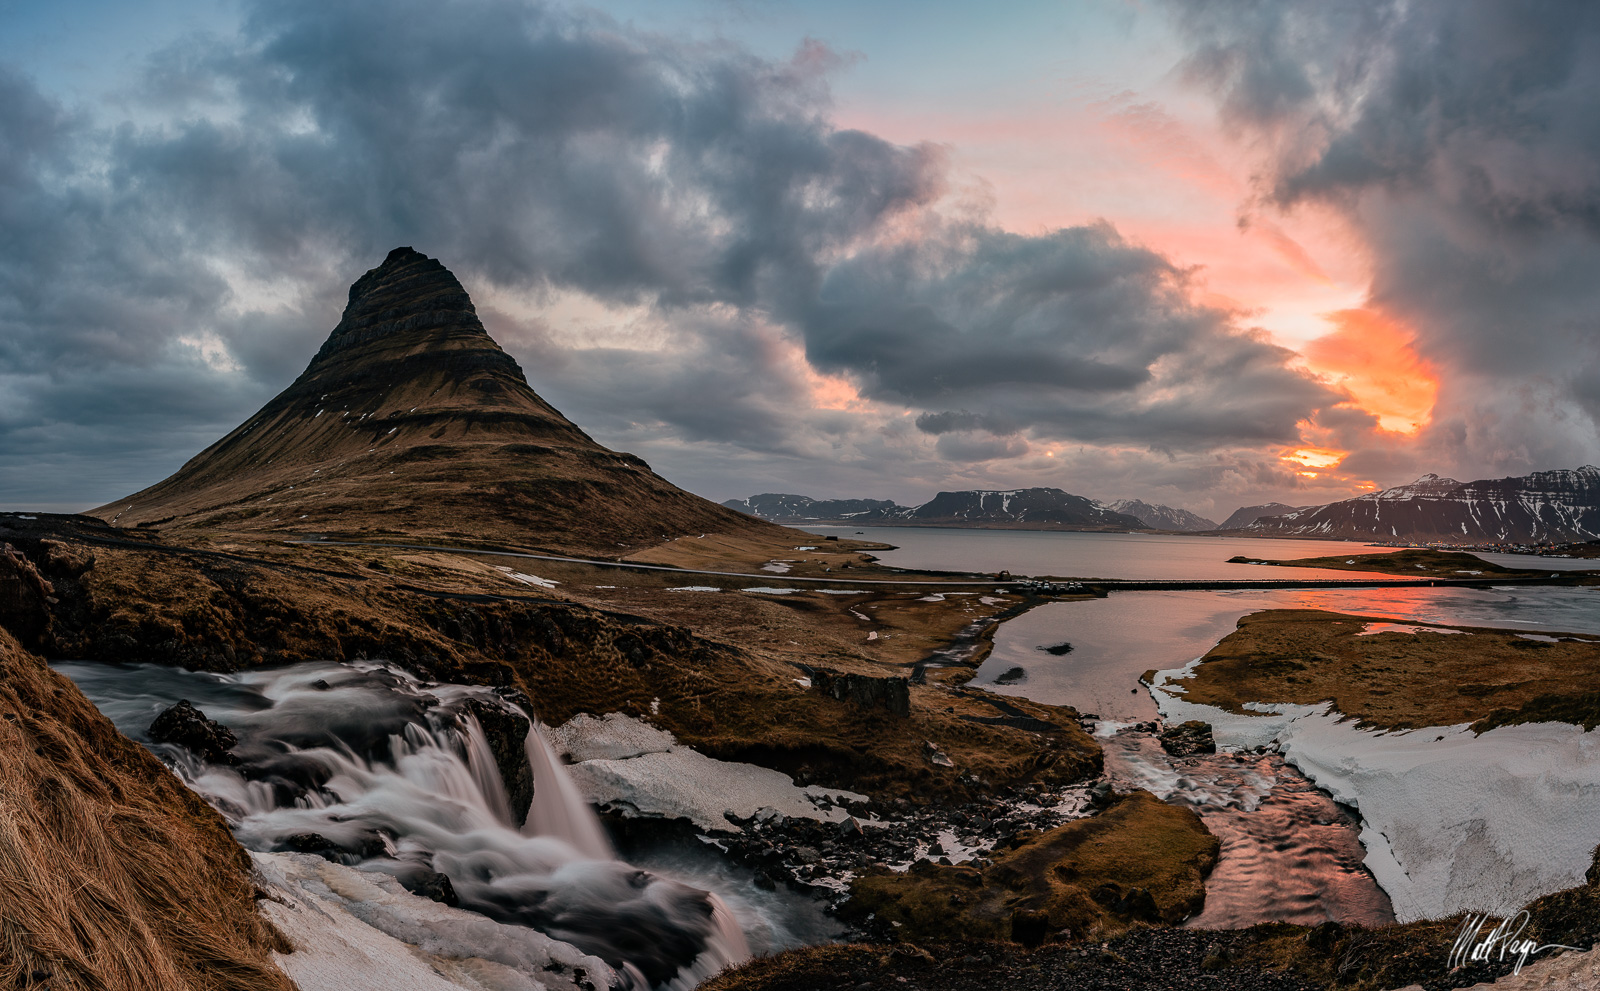 Clouds, Fjord, Iceland, Kirkjufell, Landscape, Loxia 21, Mountain, Reflection, Snaefellsnes Peninsula, Sony A7R2, Sunrise, Water, Waterfall, arctic, beautiful, grass, photo